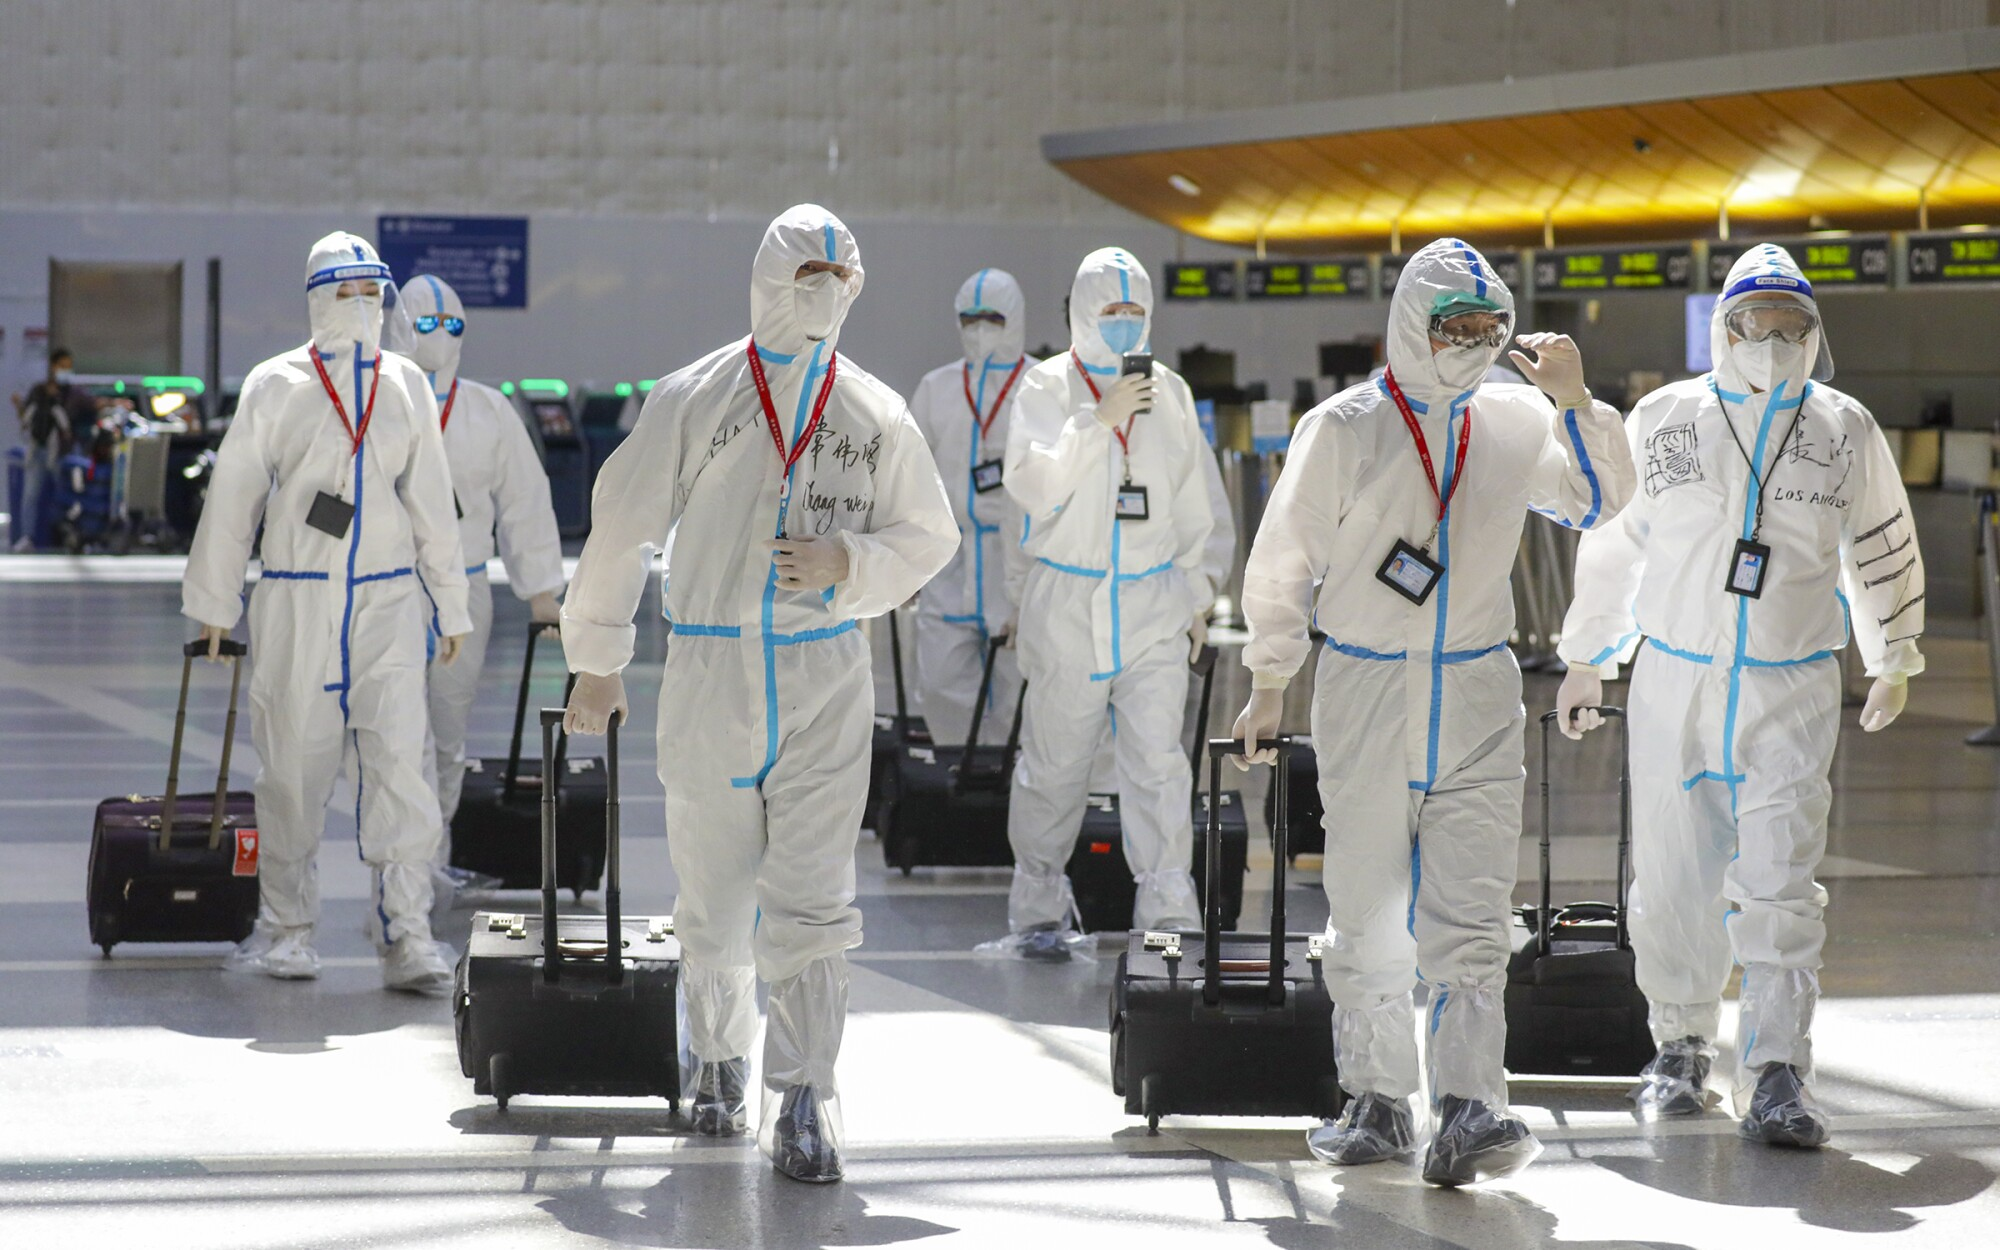 A flight crew in full biohazard suits at Tom Bradley Terminal.